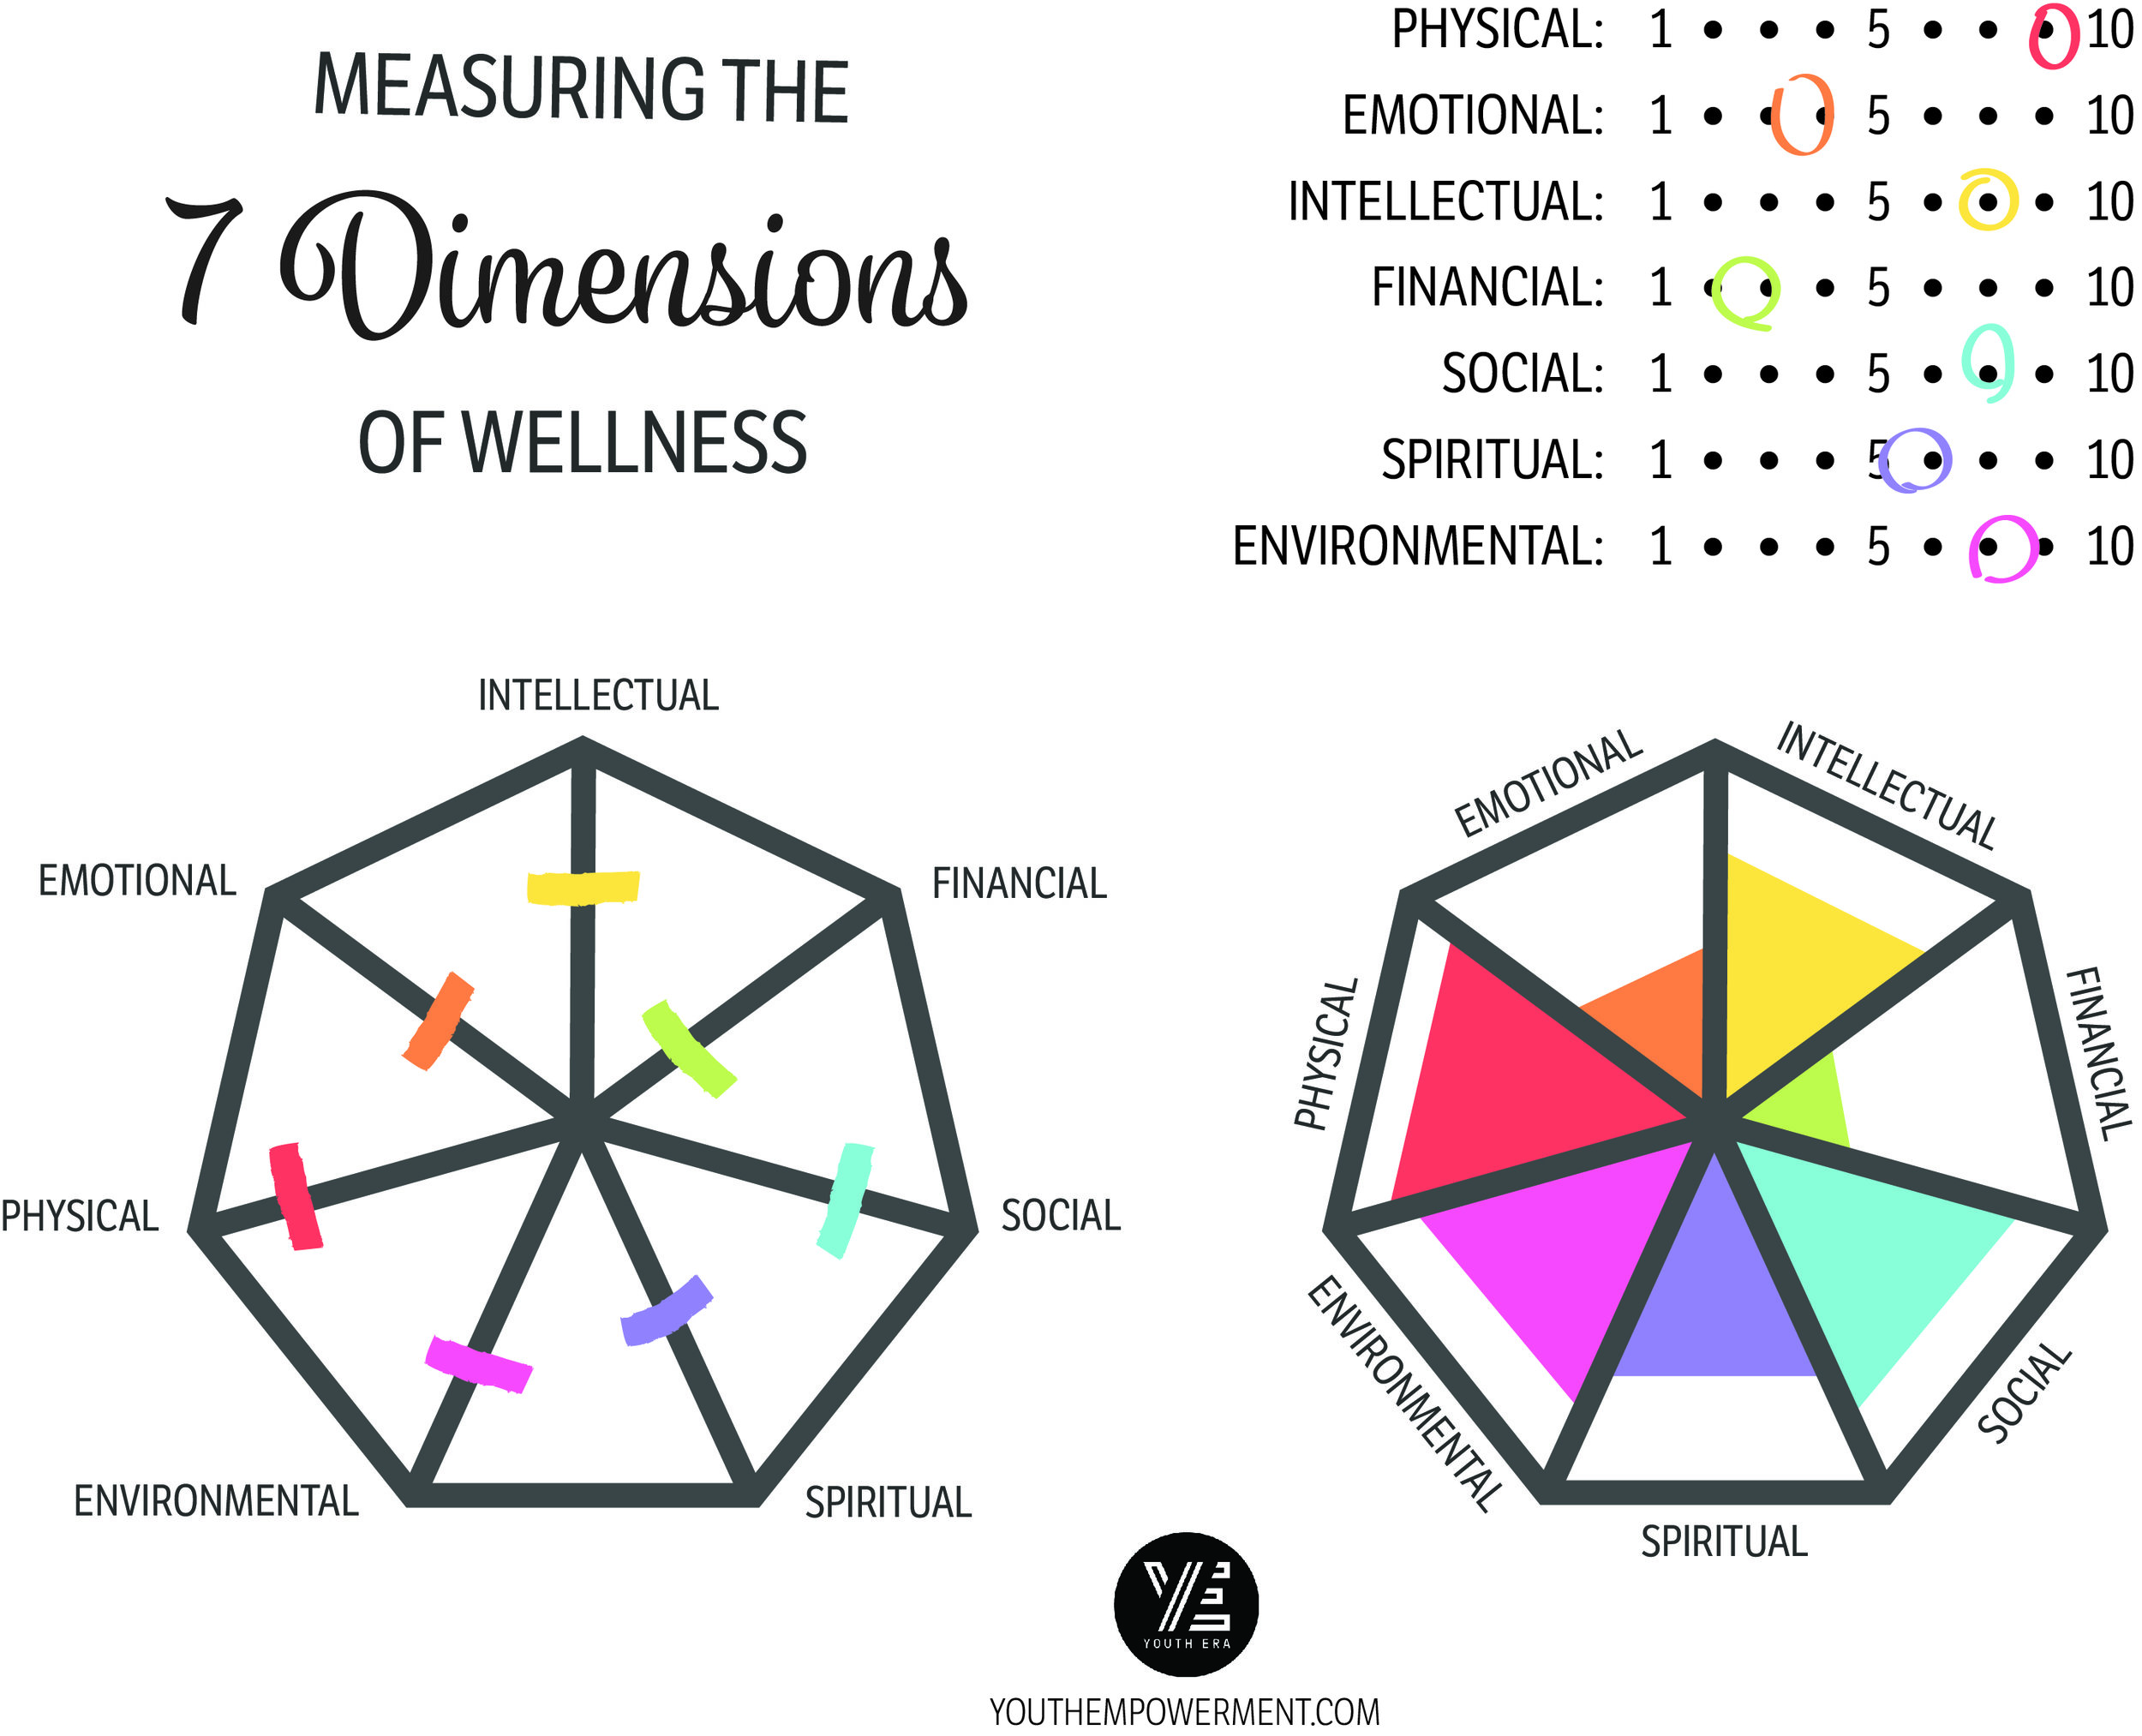 Measuring the 7 Dimensions of Wellness.jpg